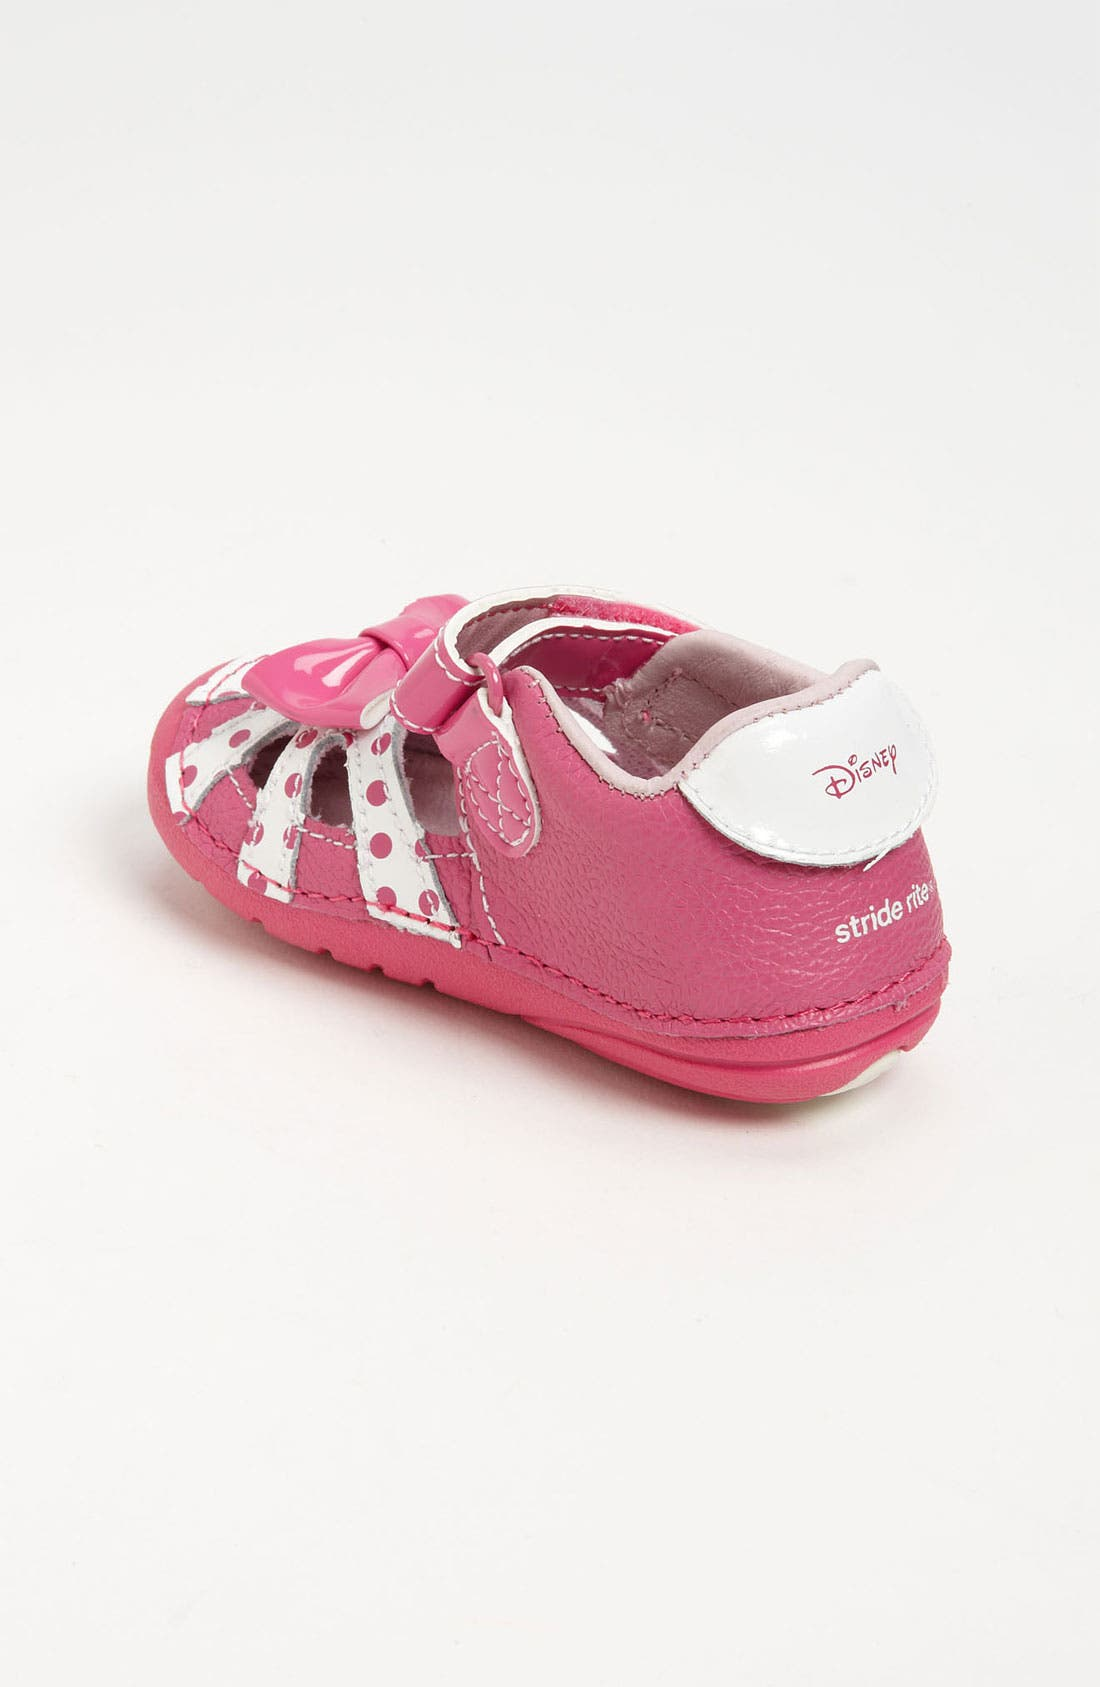 Alternate Image 2  - Stride Rite 'Minnie' Sandal (Baby & Walker)